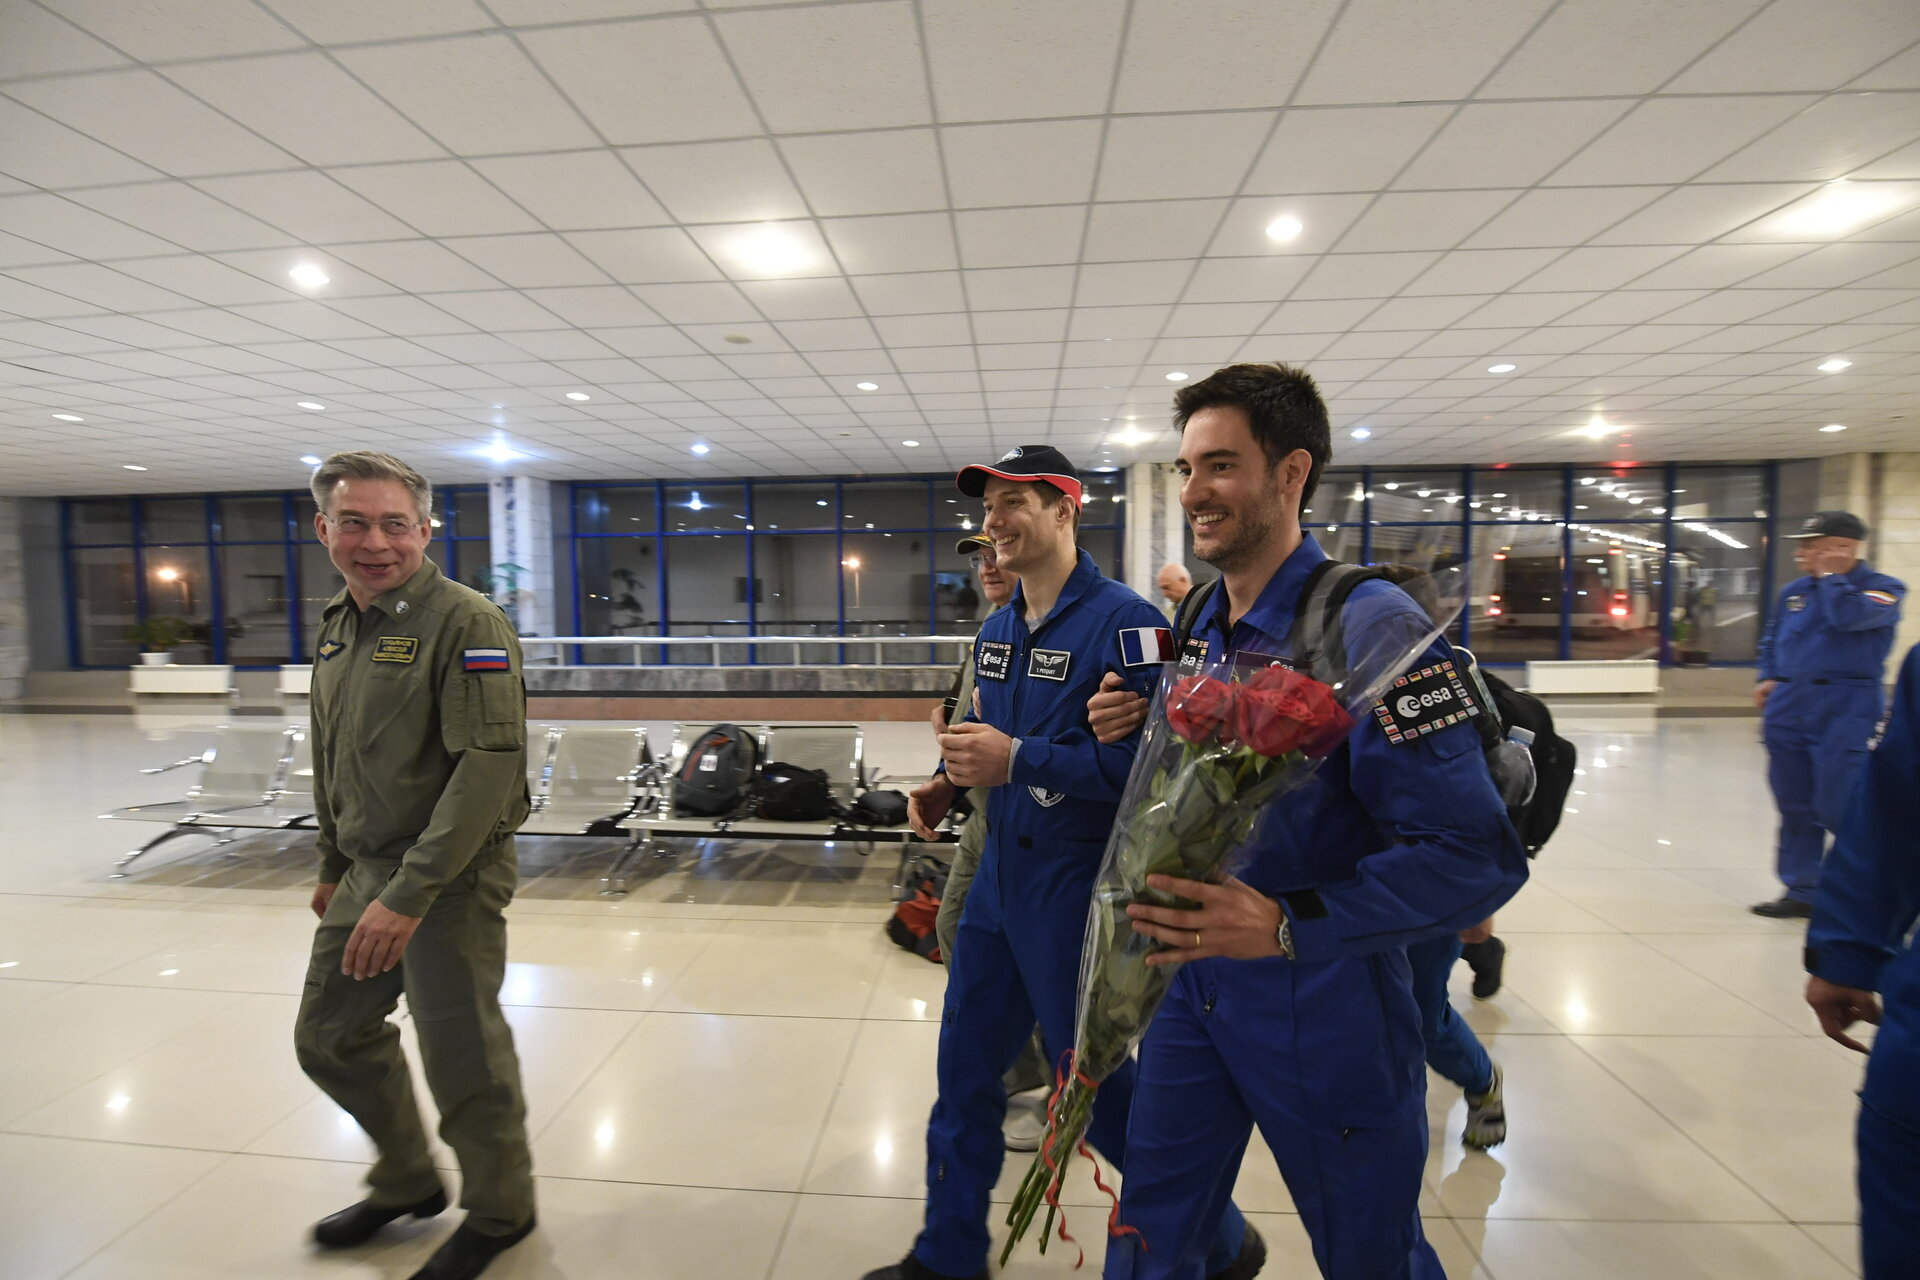 Thomas arrived in Karaganda airport